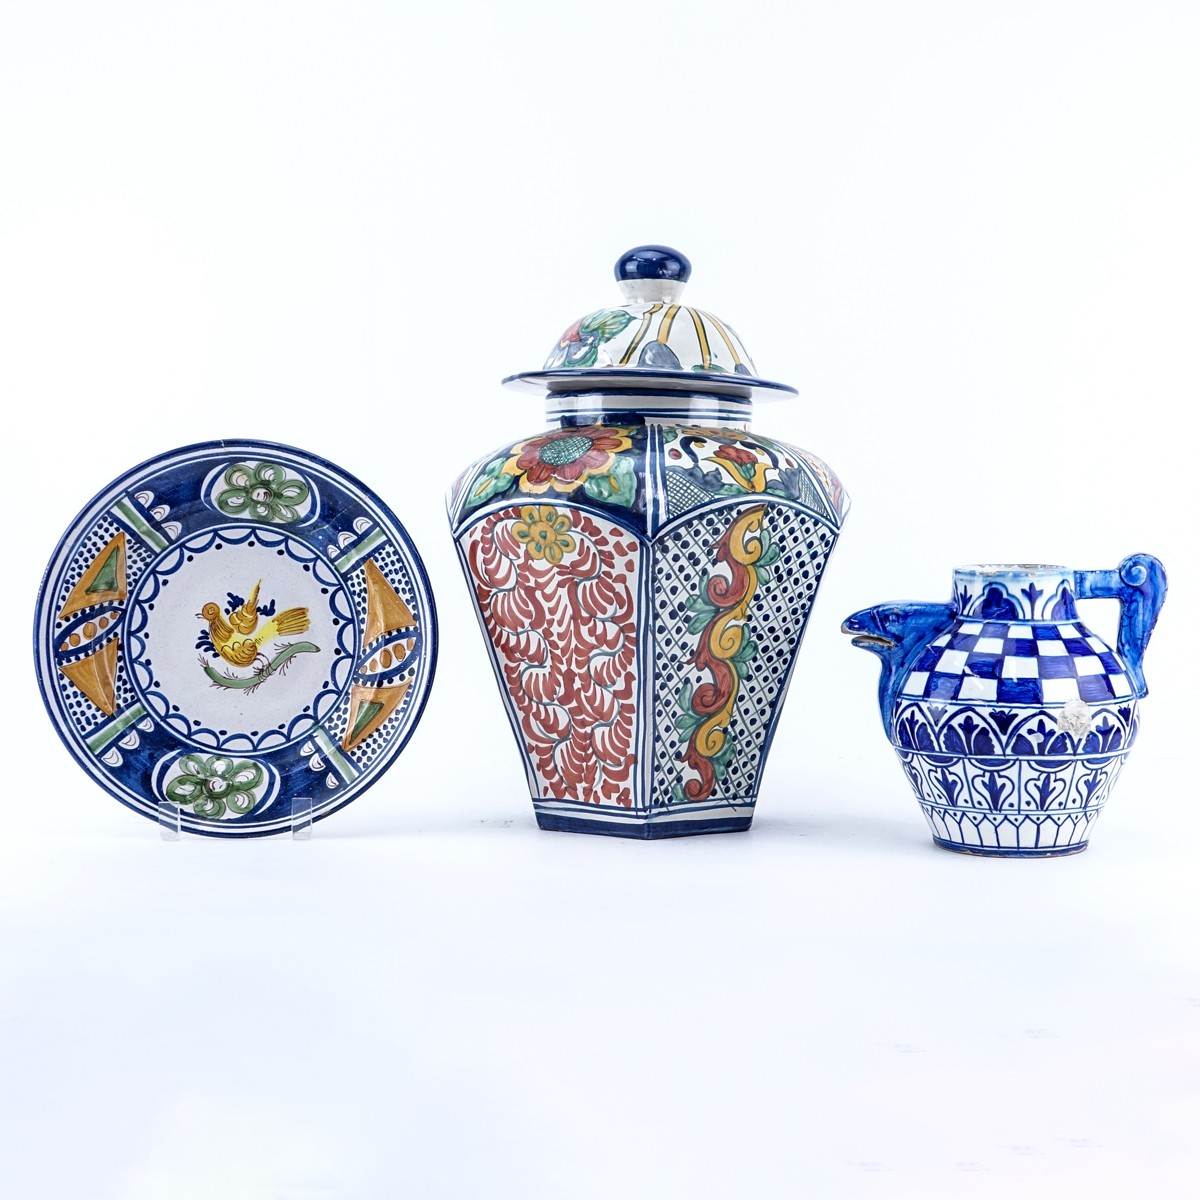 Grouping of Three (3): Large Mexican Faience Pottery Covered Jar, Faience Pottery Cabinet Plate, an